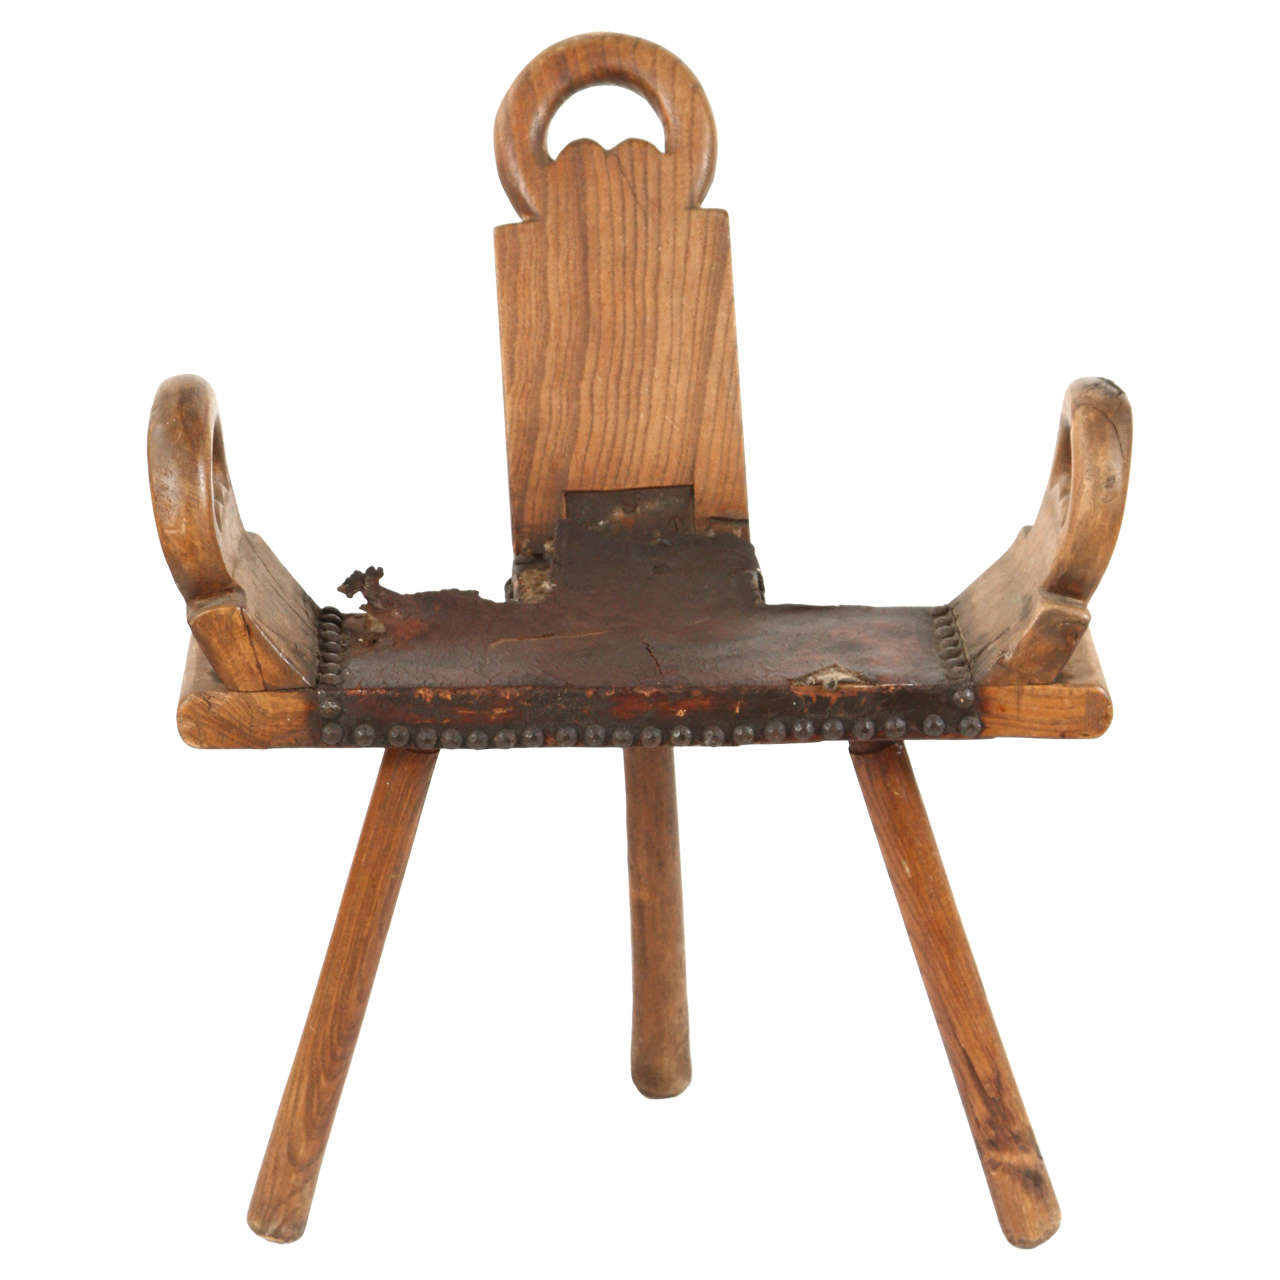 Antique birthing chair - Download